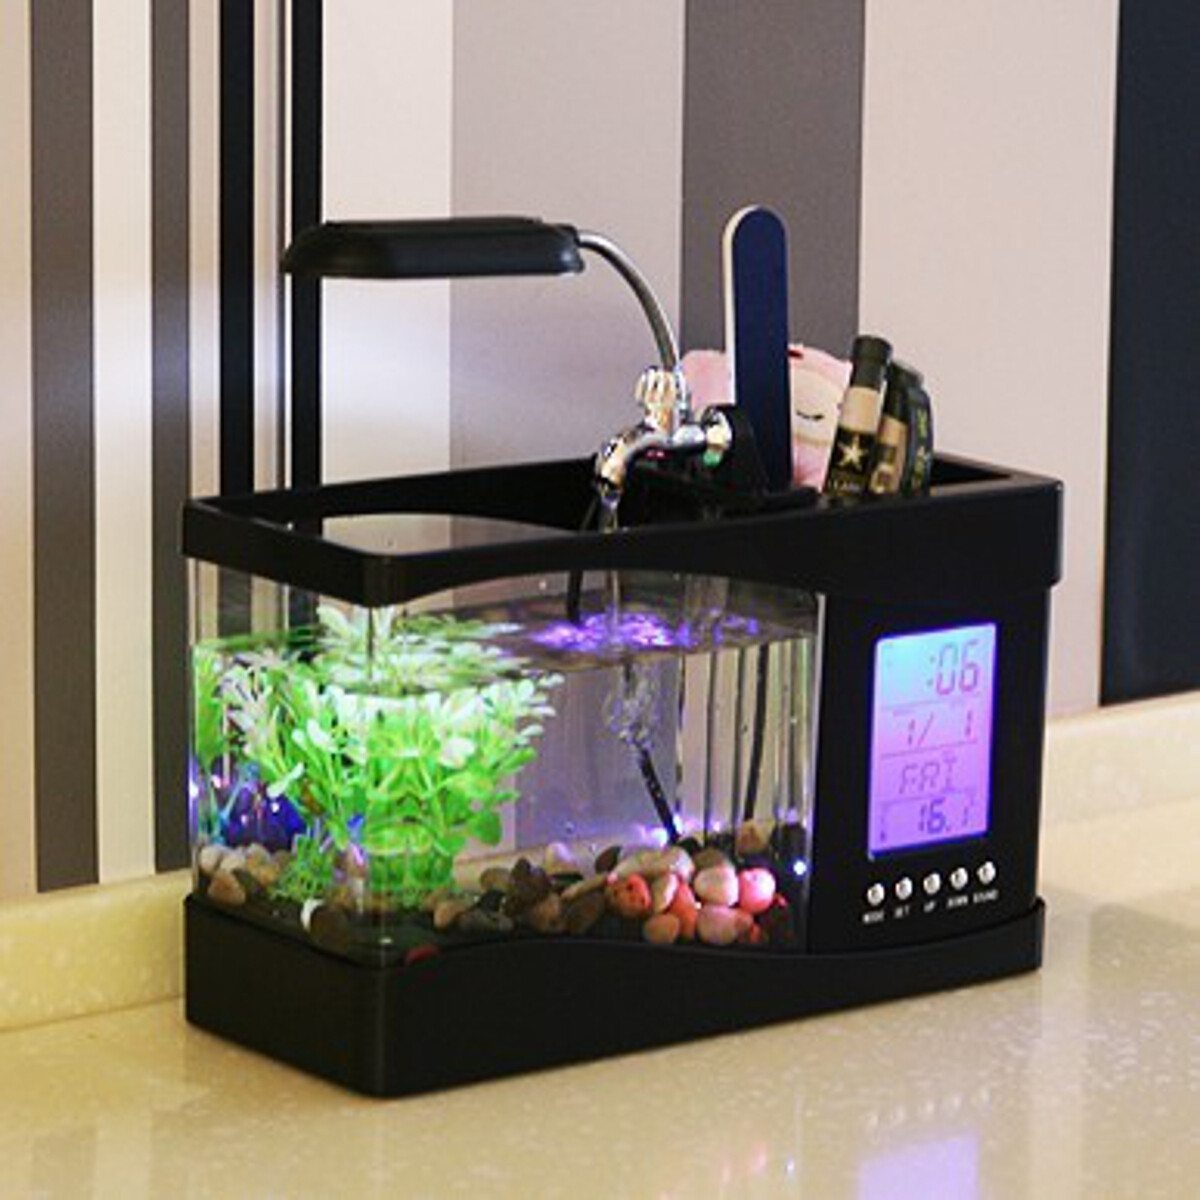 organiseur de bureau usb aquarium. Black Bedroom Furniture Sets. Home Design Ideas